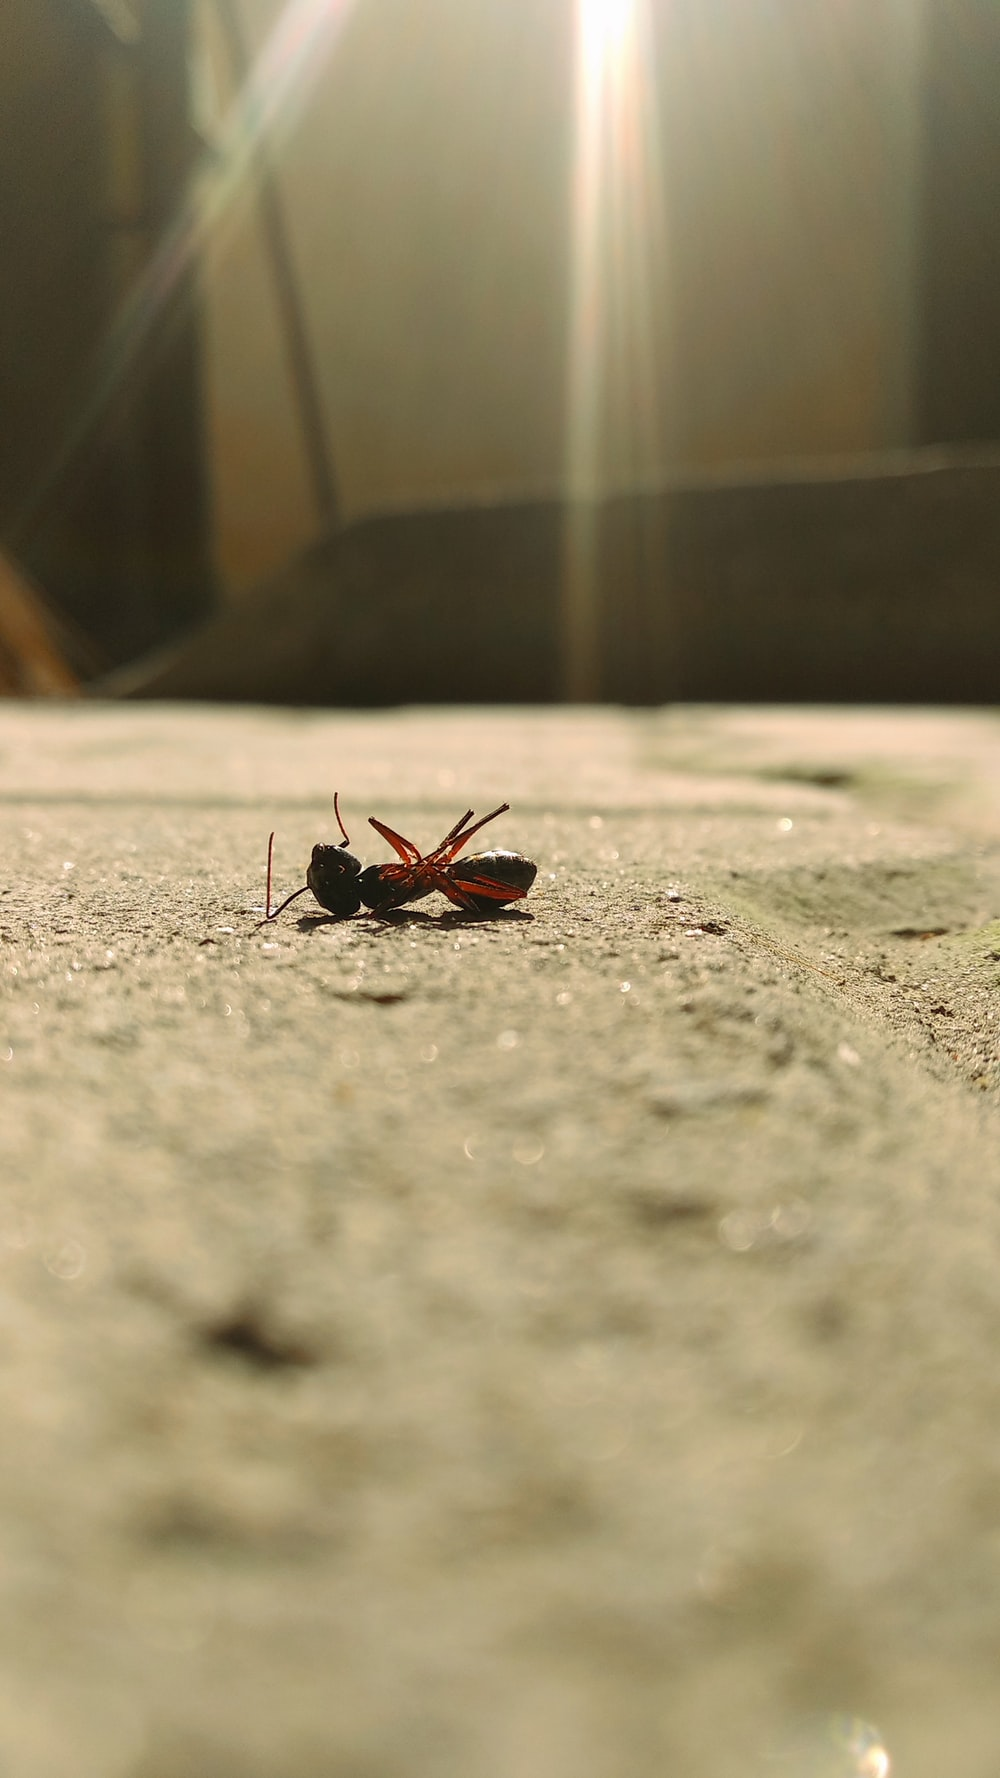 black and red insect on gray concrete floor